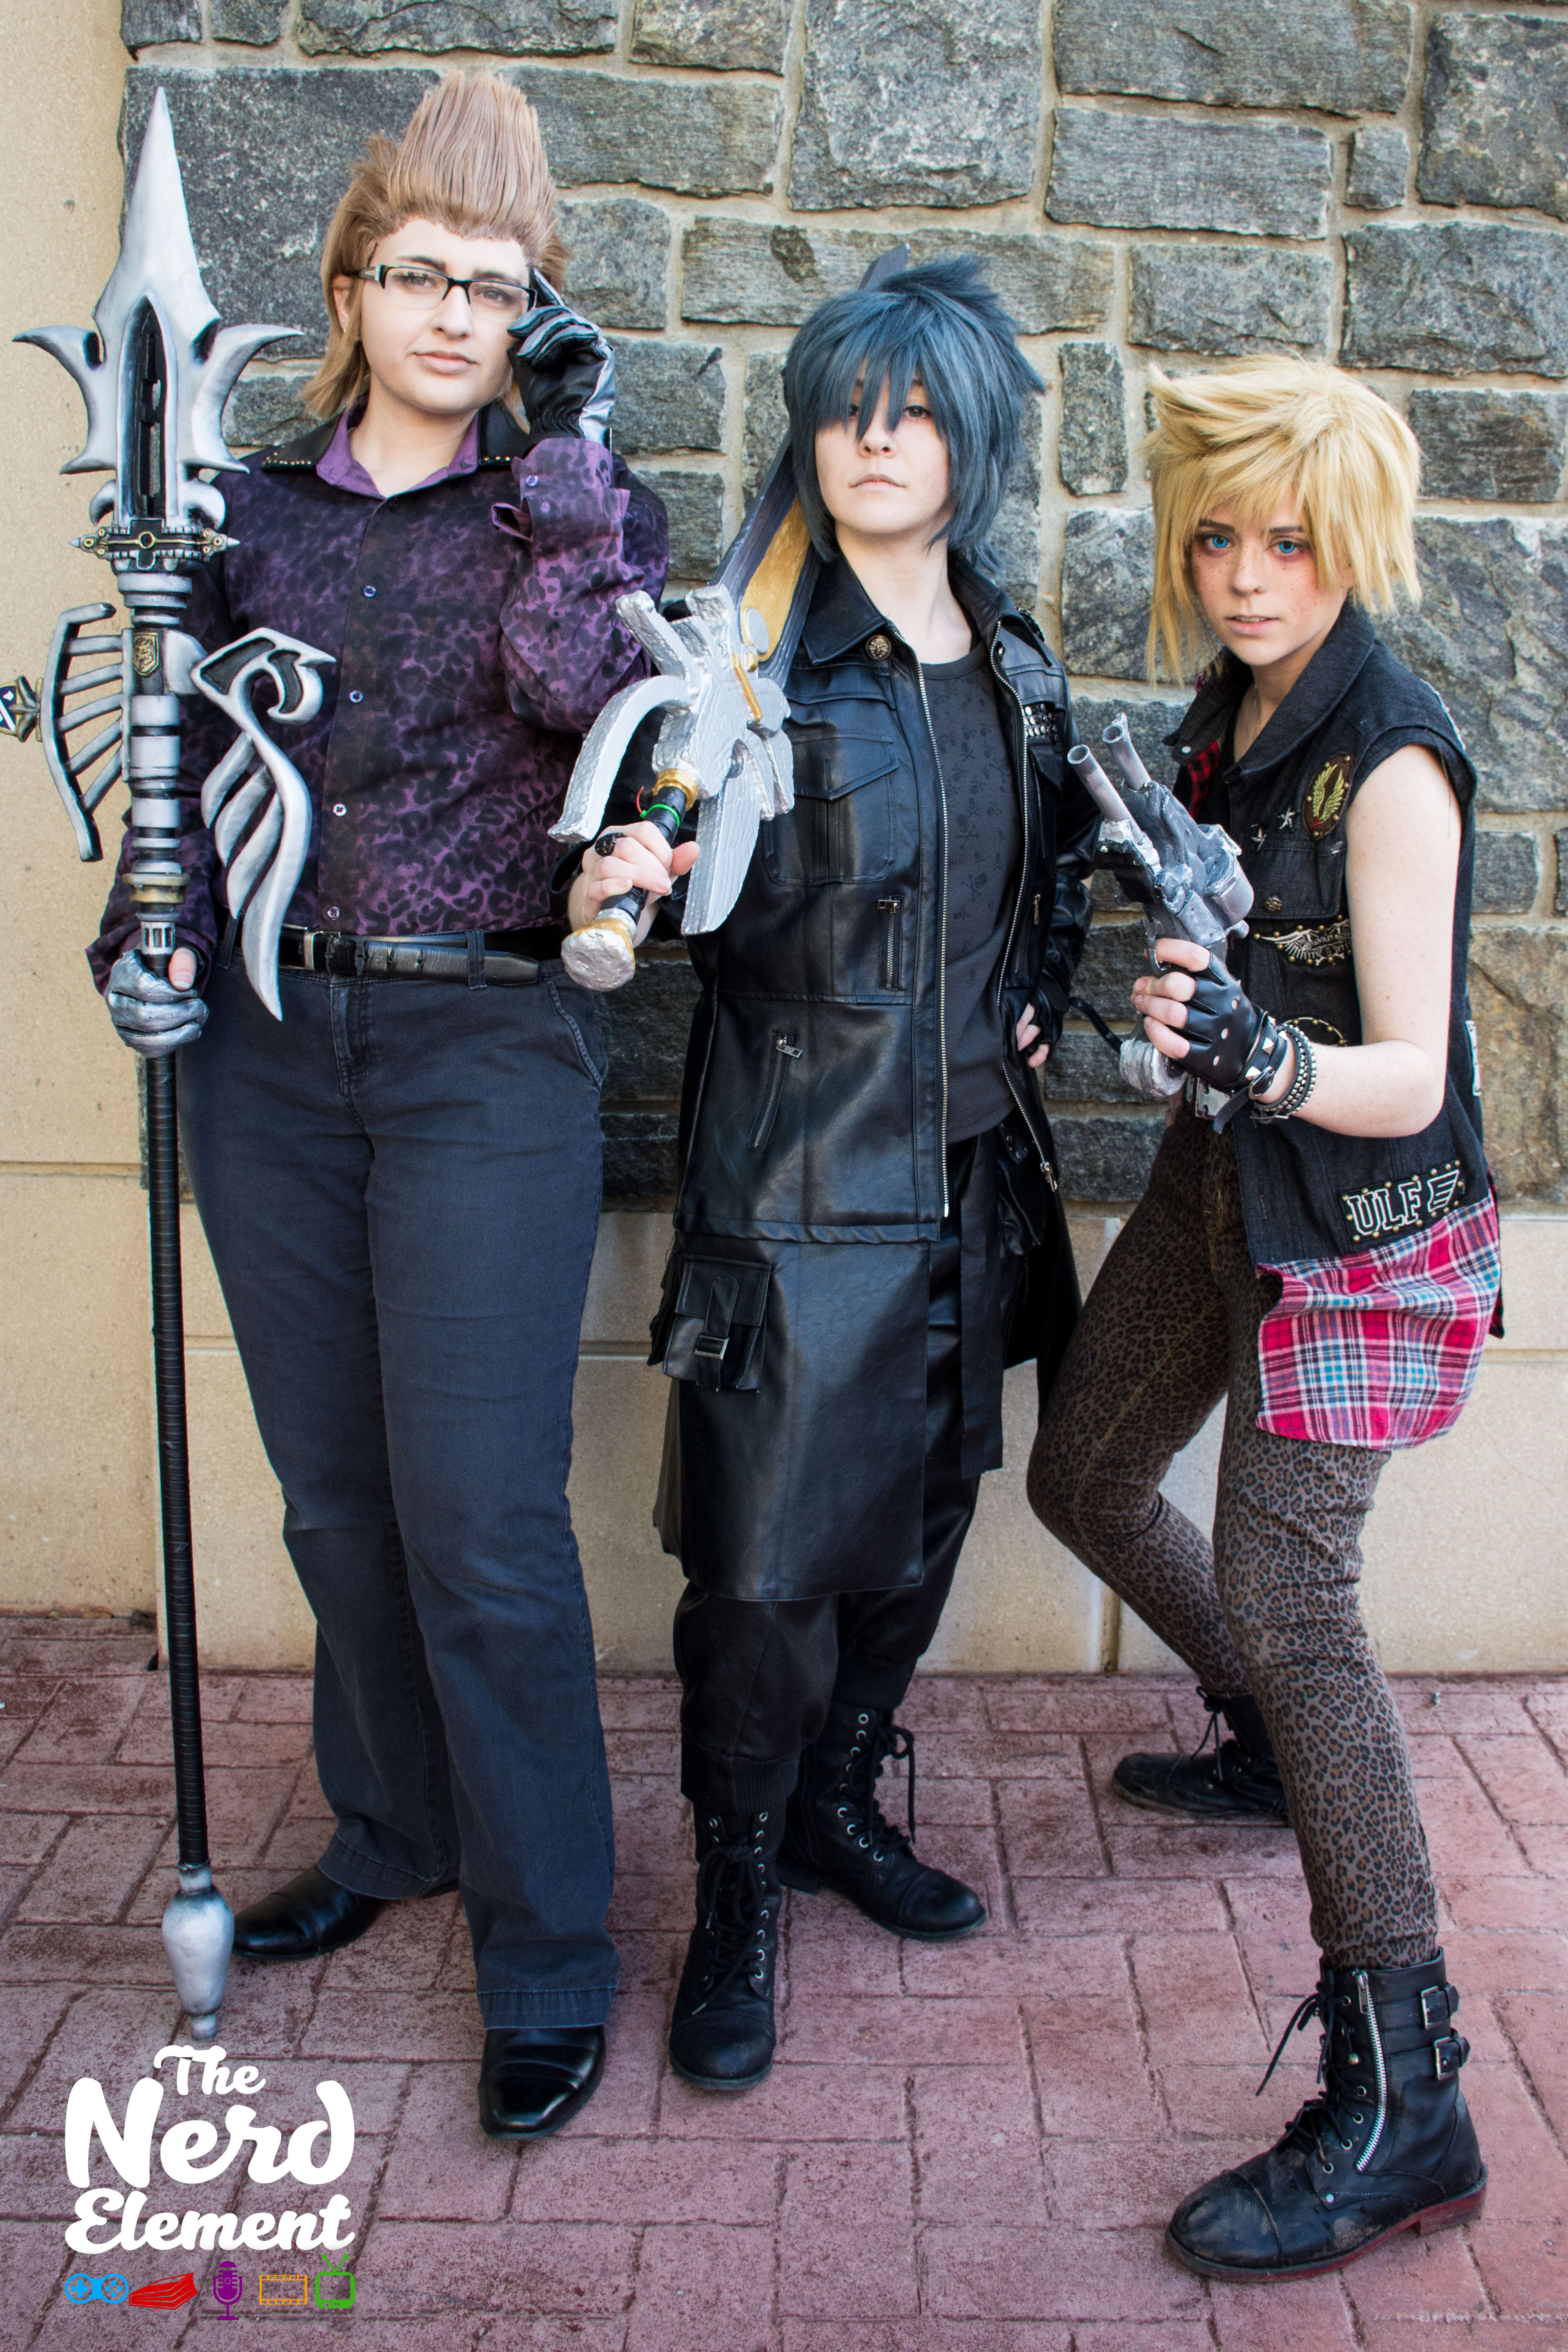 Ignis, Noctis, and Prompto - Final Fantasy XV Cosplayers: s_noelle_cosplay (ig), and zeikani (ig),